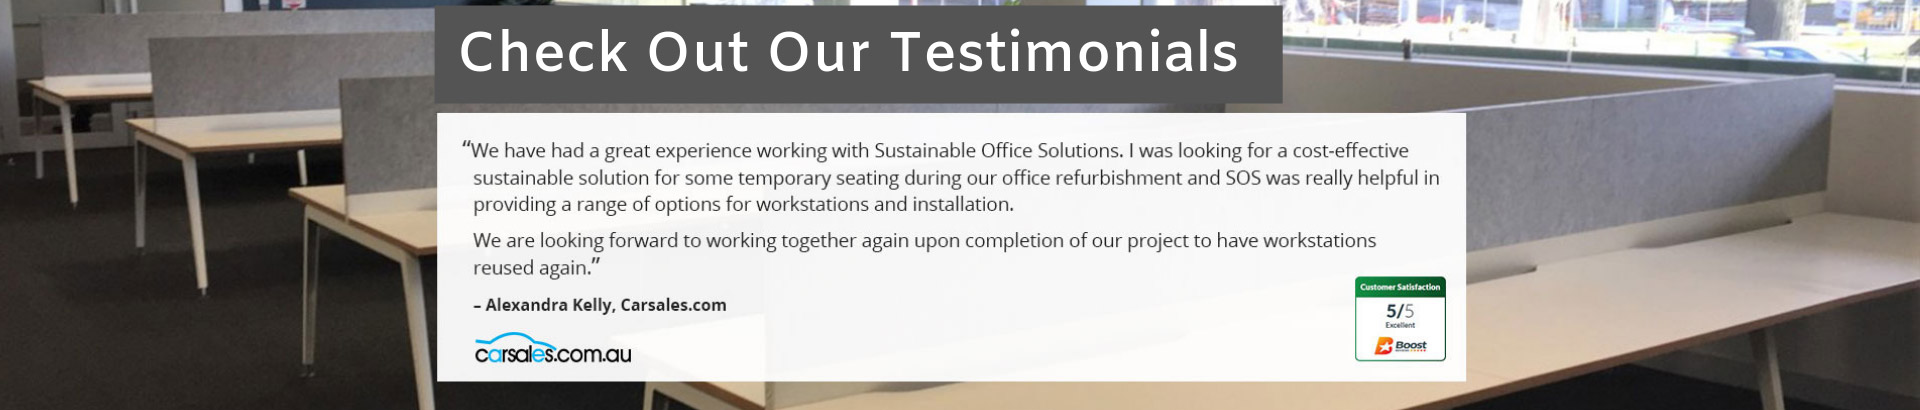 Check out our testimonials.